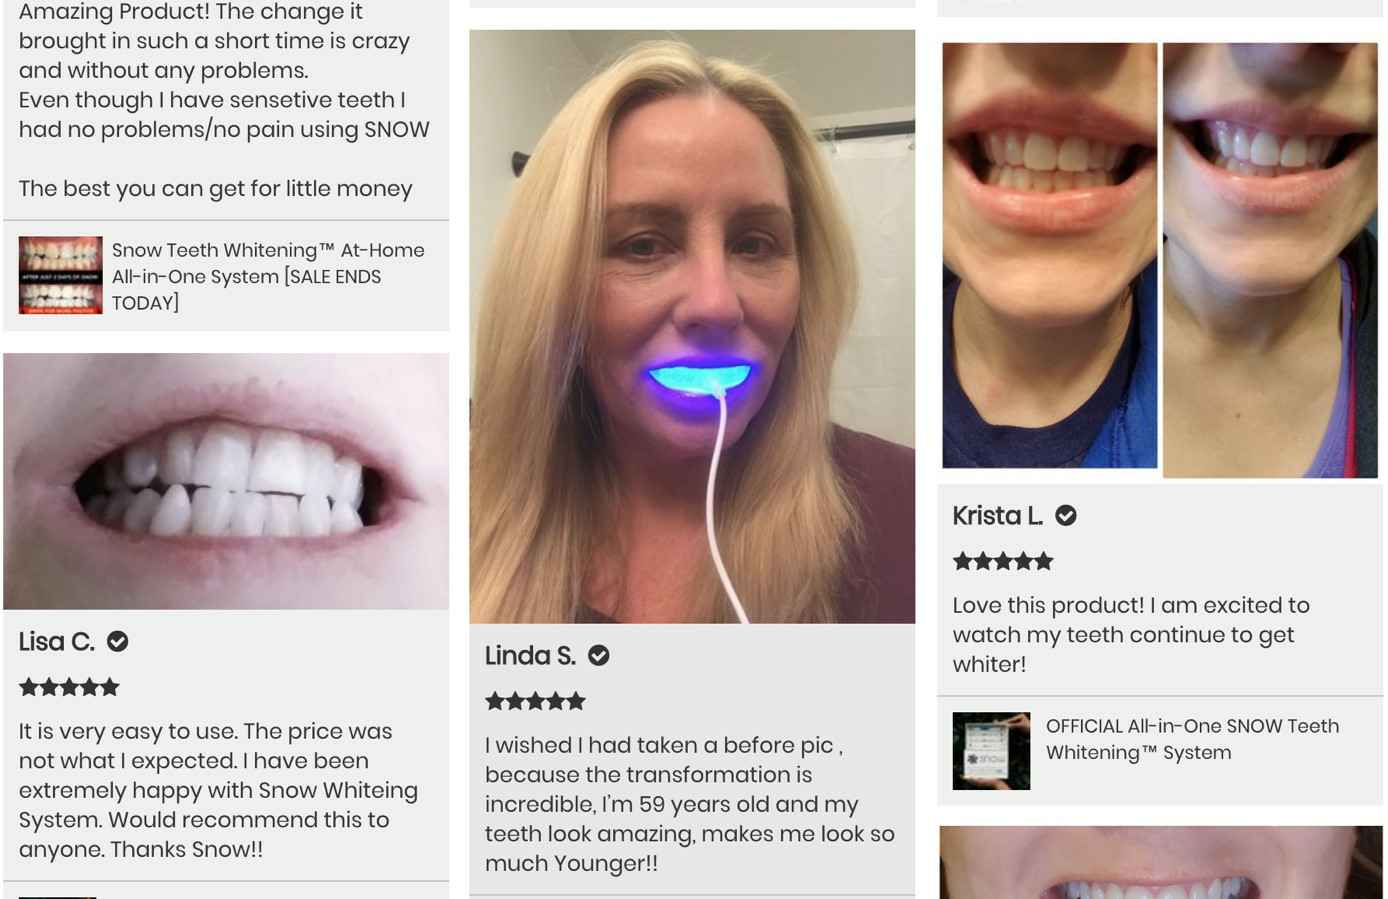 Buy Used Snow Teeth Whitening Kit Cheap